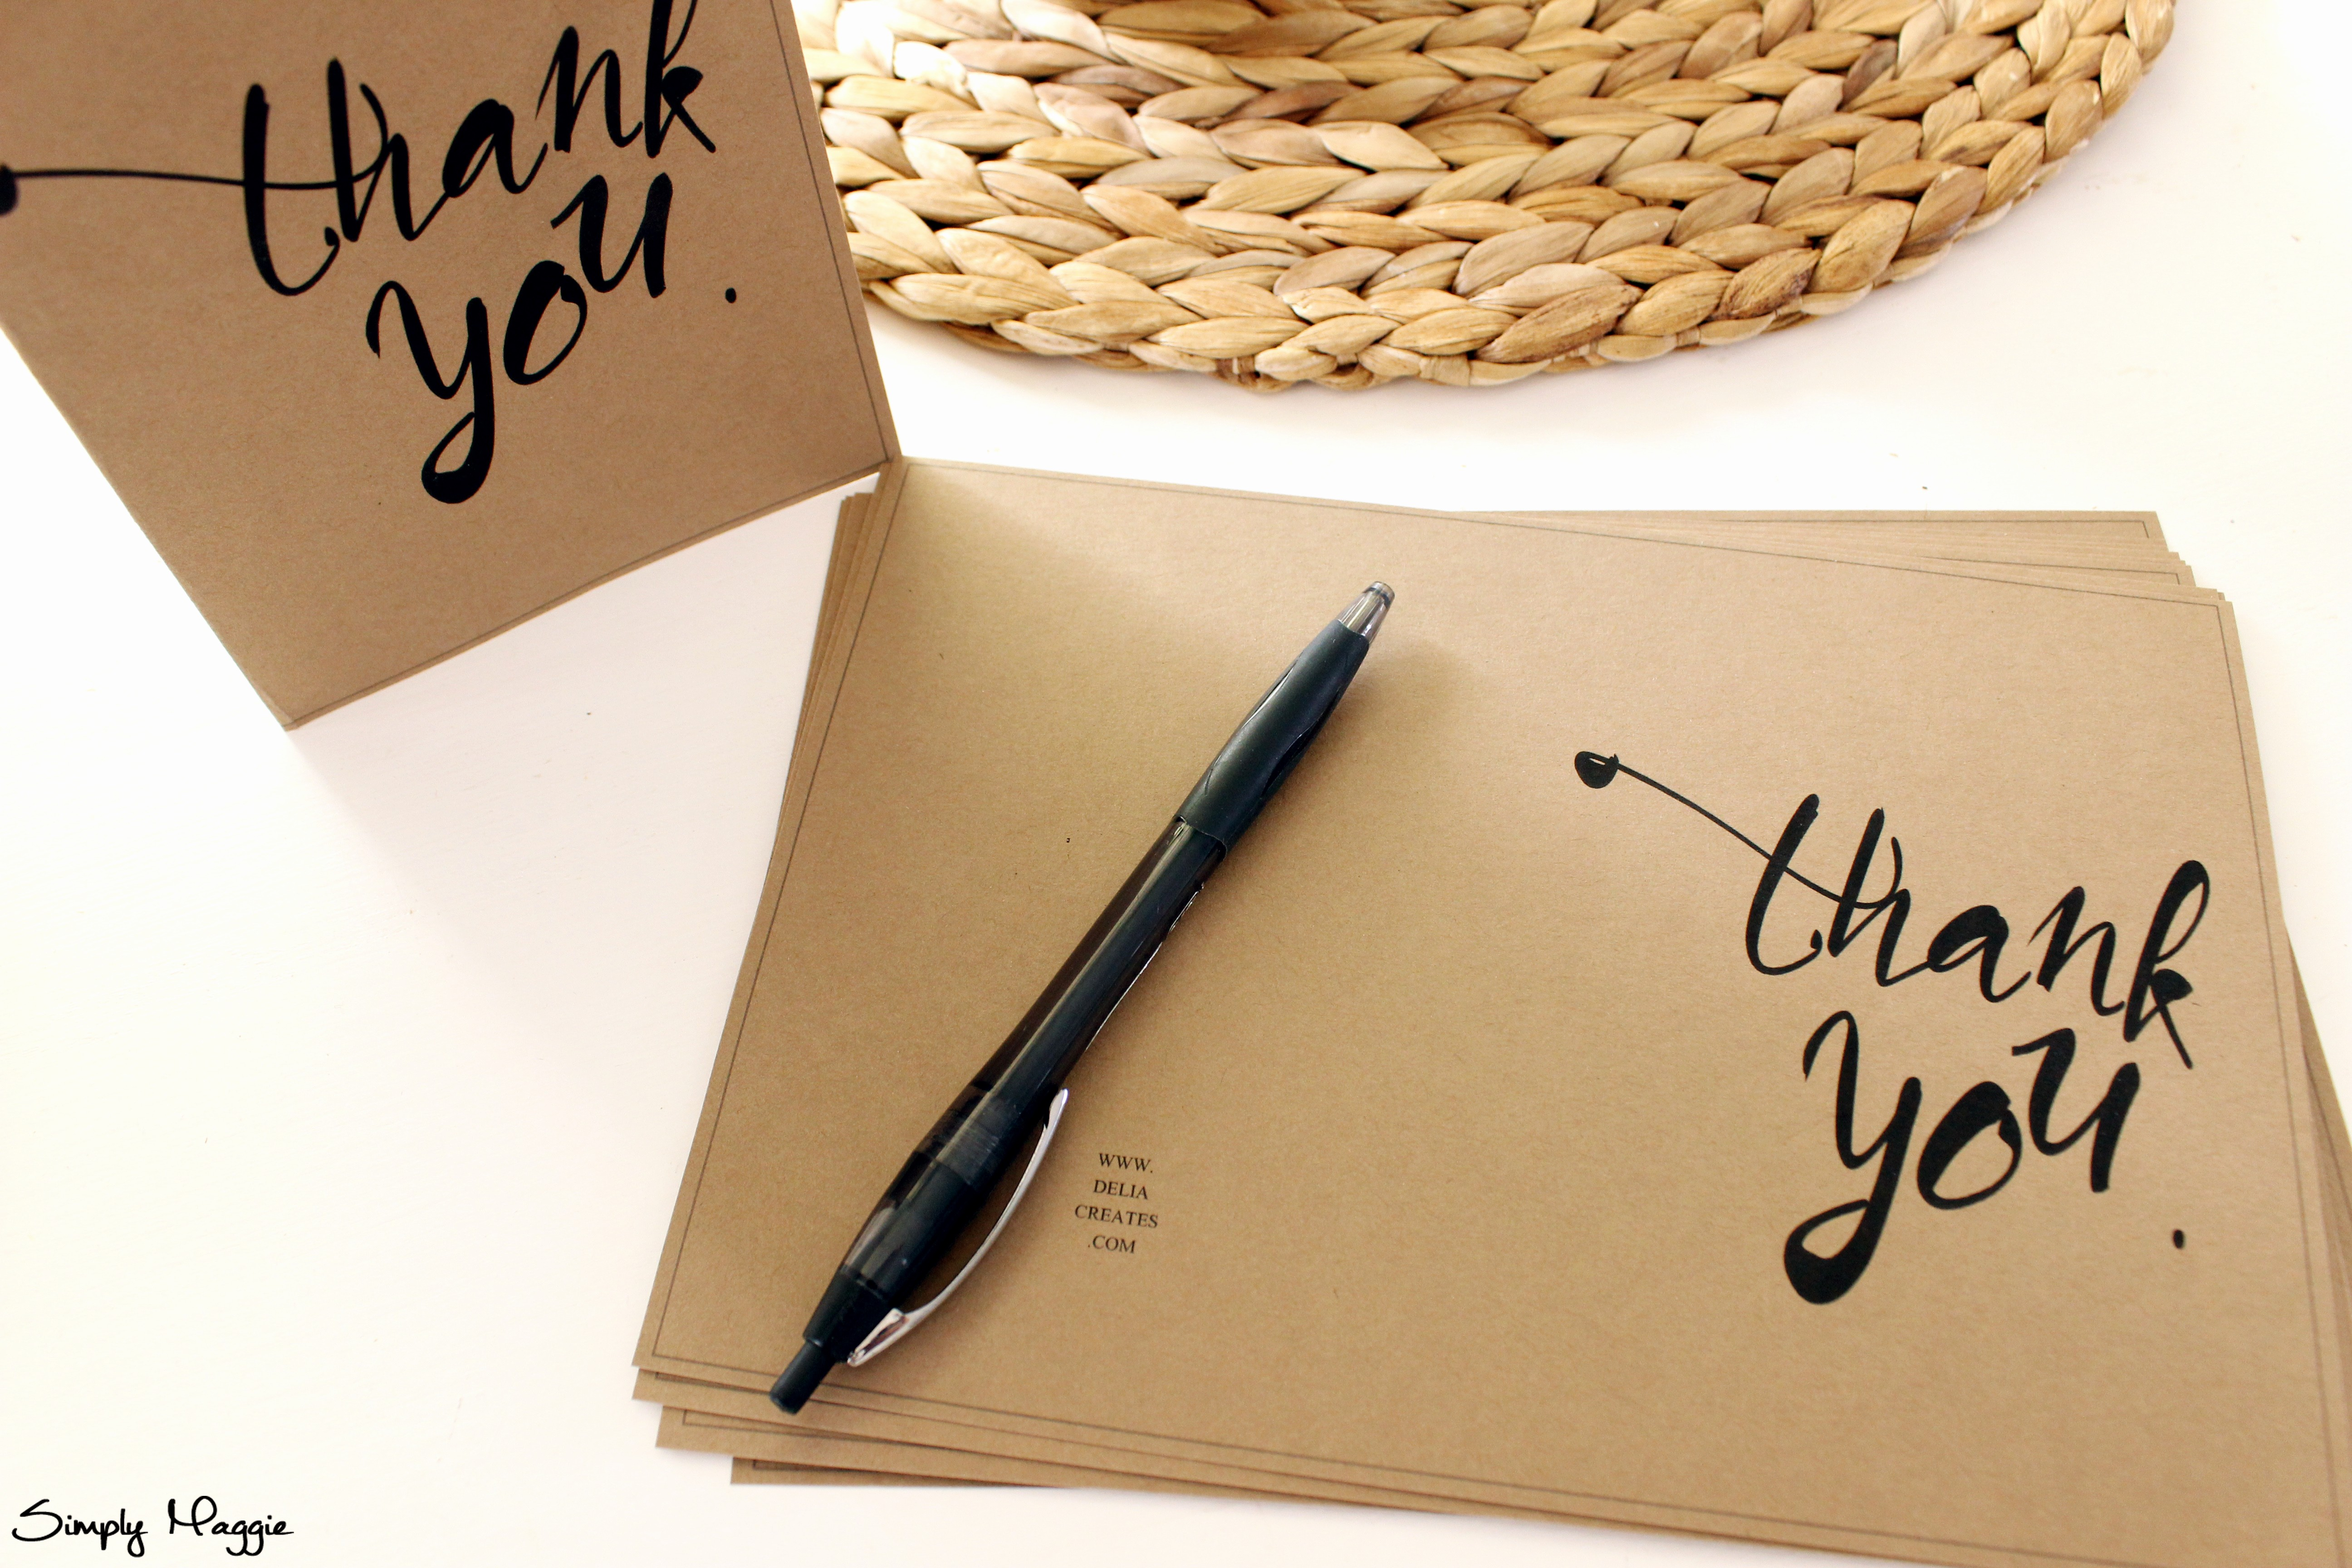 Thank You Card Template Free Lovely Thank You Card Template Free